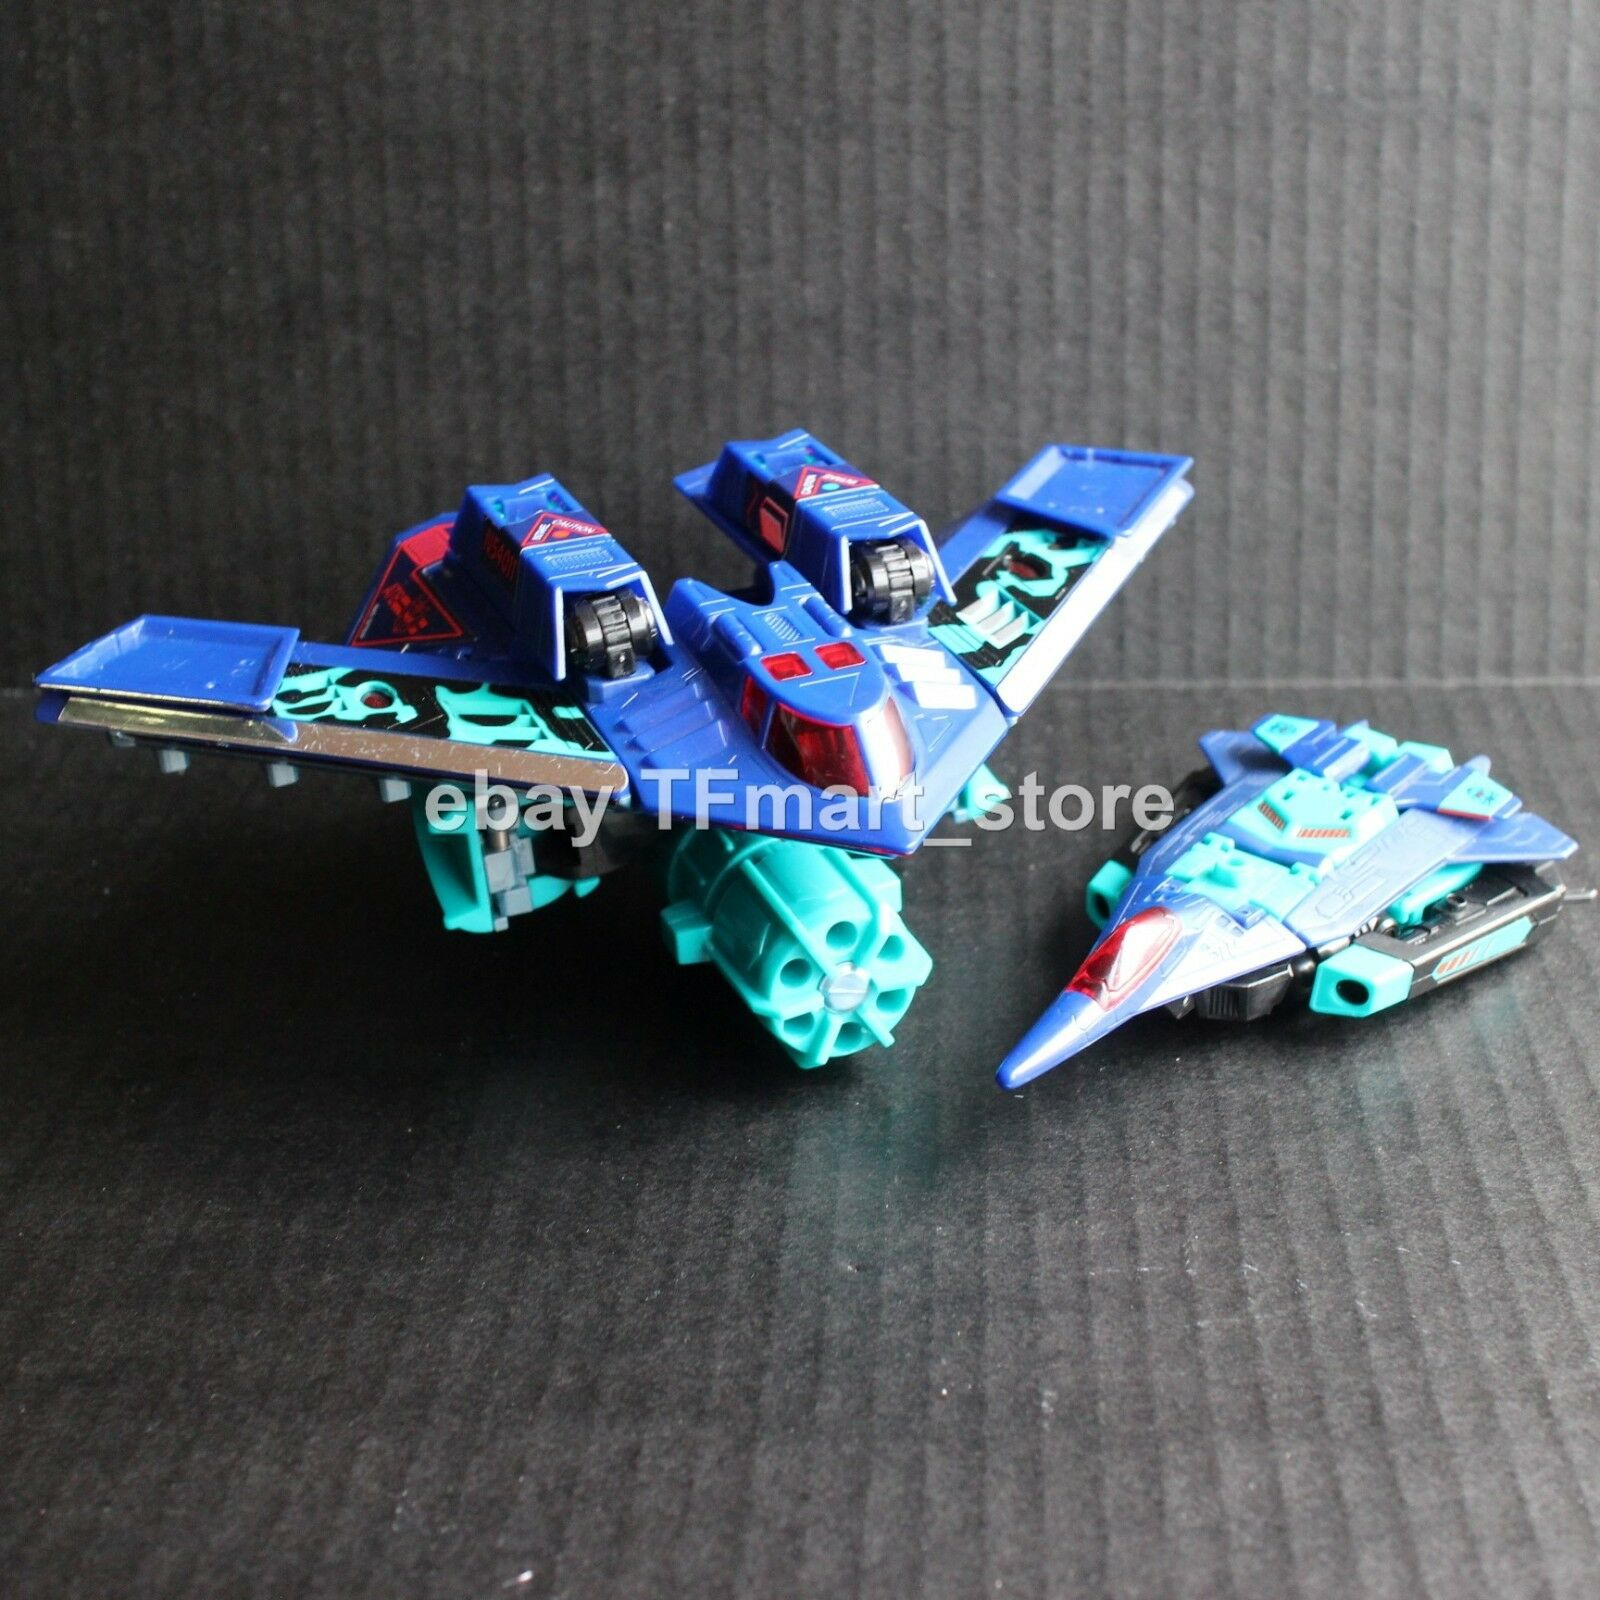 Transformers Generation 2 1994 G2 Dreadwing e Smokescreen Very Nice